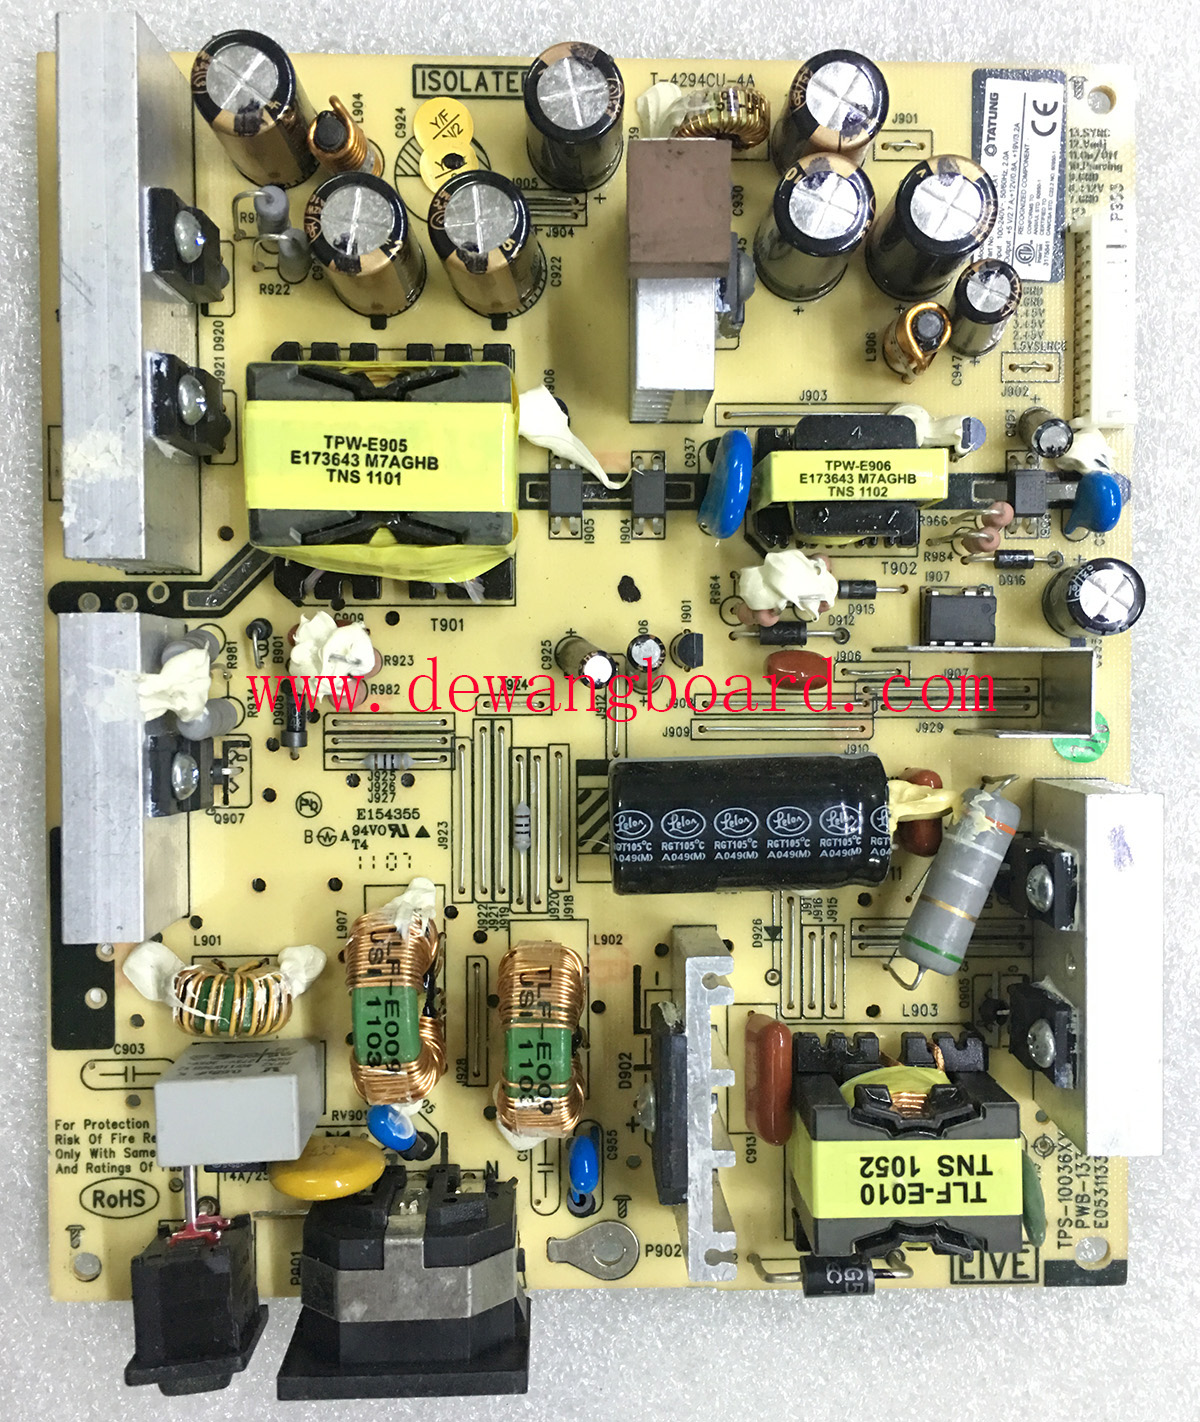 TPS-10036XXXX PWB-1336-02 E053113362 HP ZR24W power board